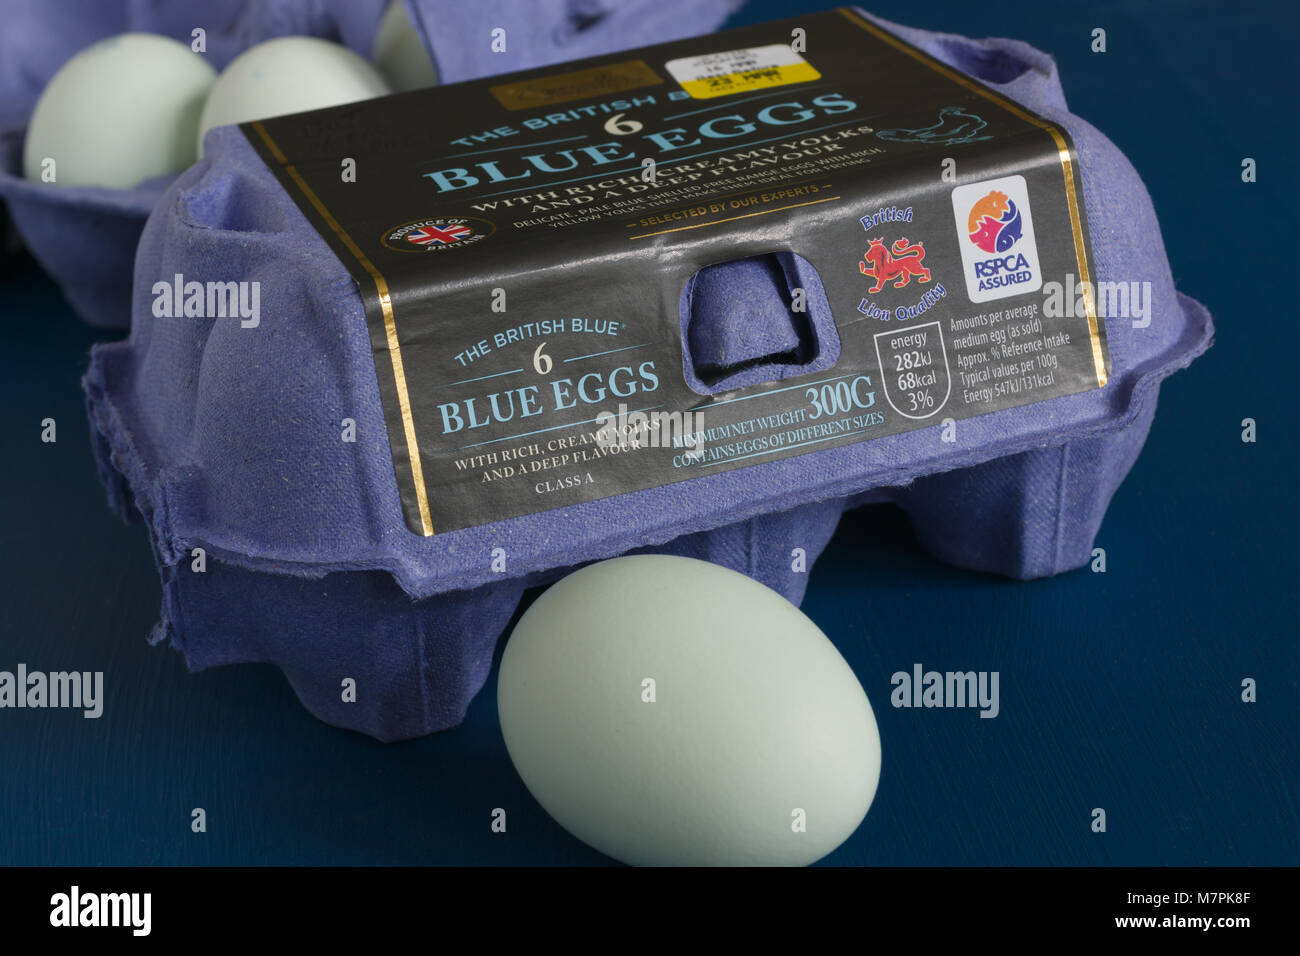 The British Blue hens eggs stocked under the Aldi Specially Selected brand developed and produced in Lincolnshire - Stock Image